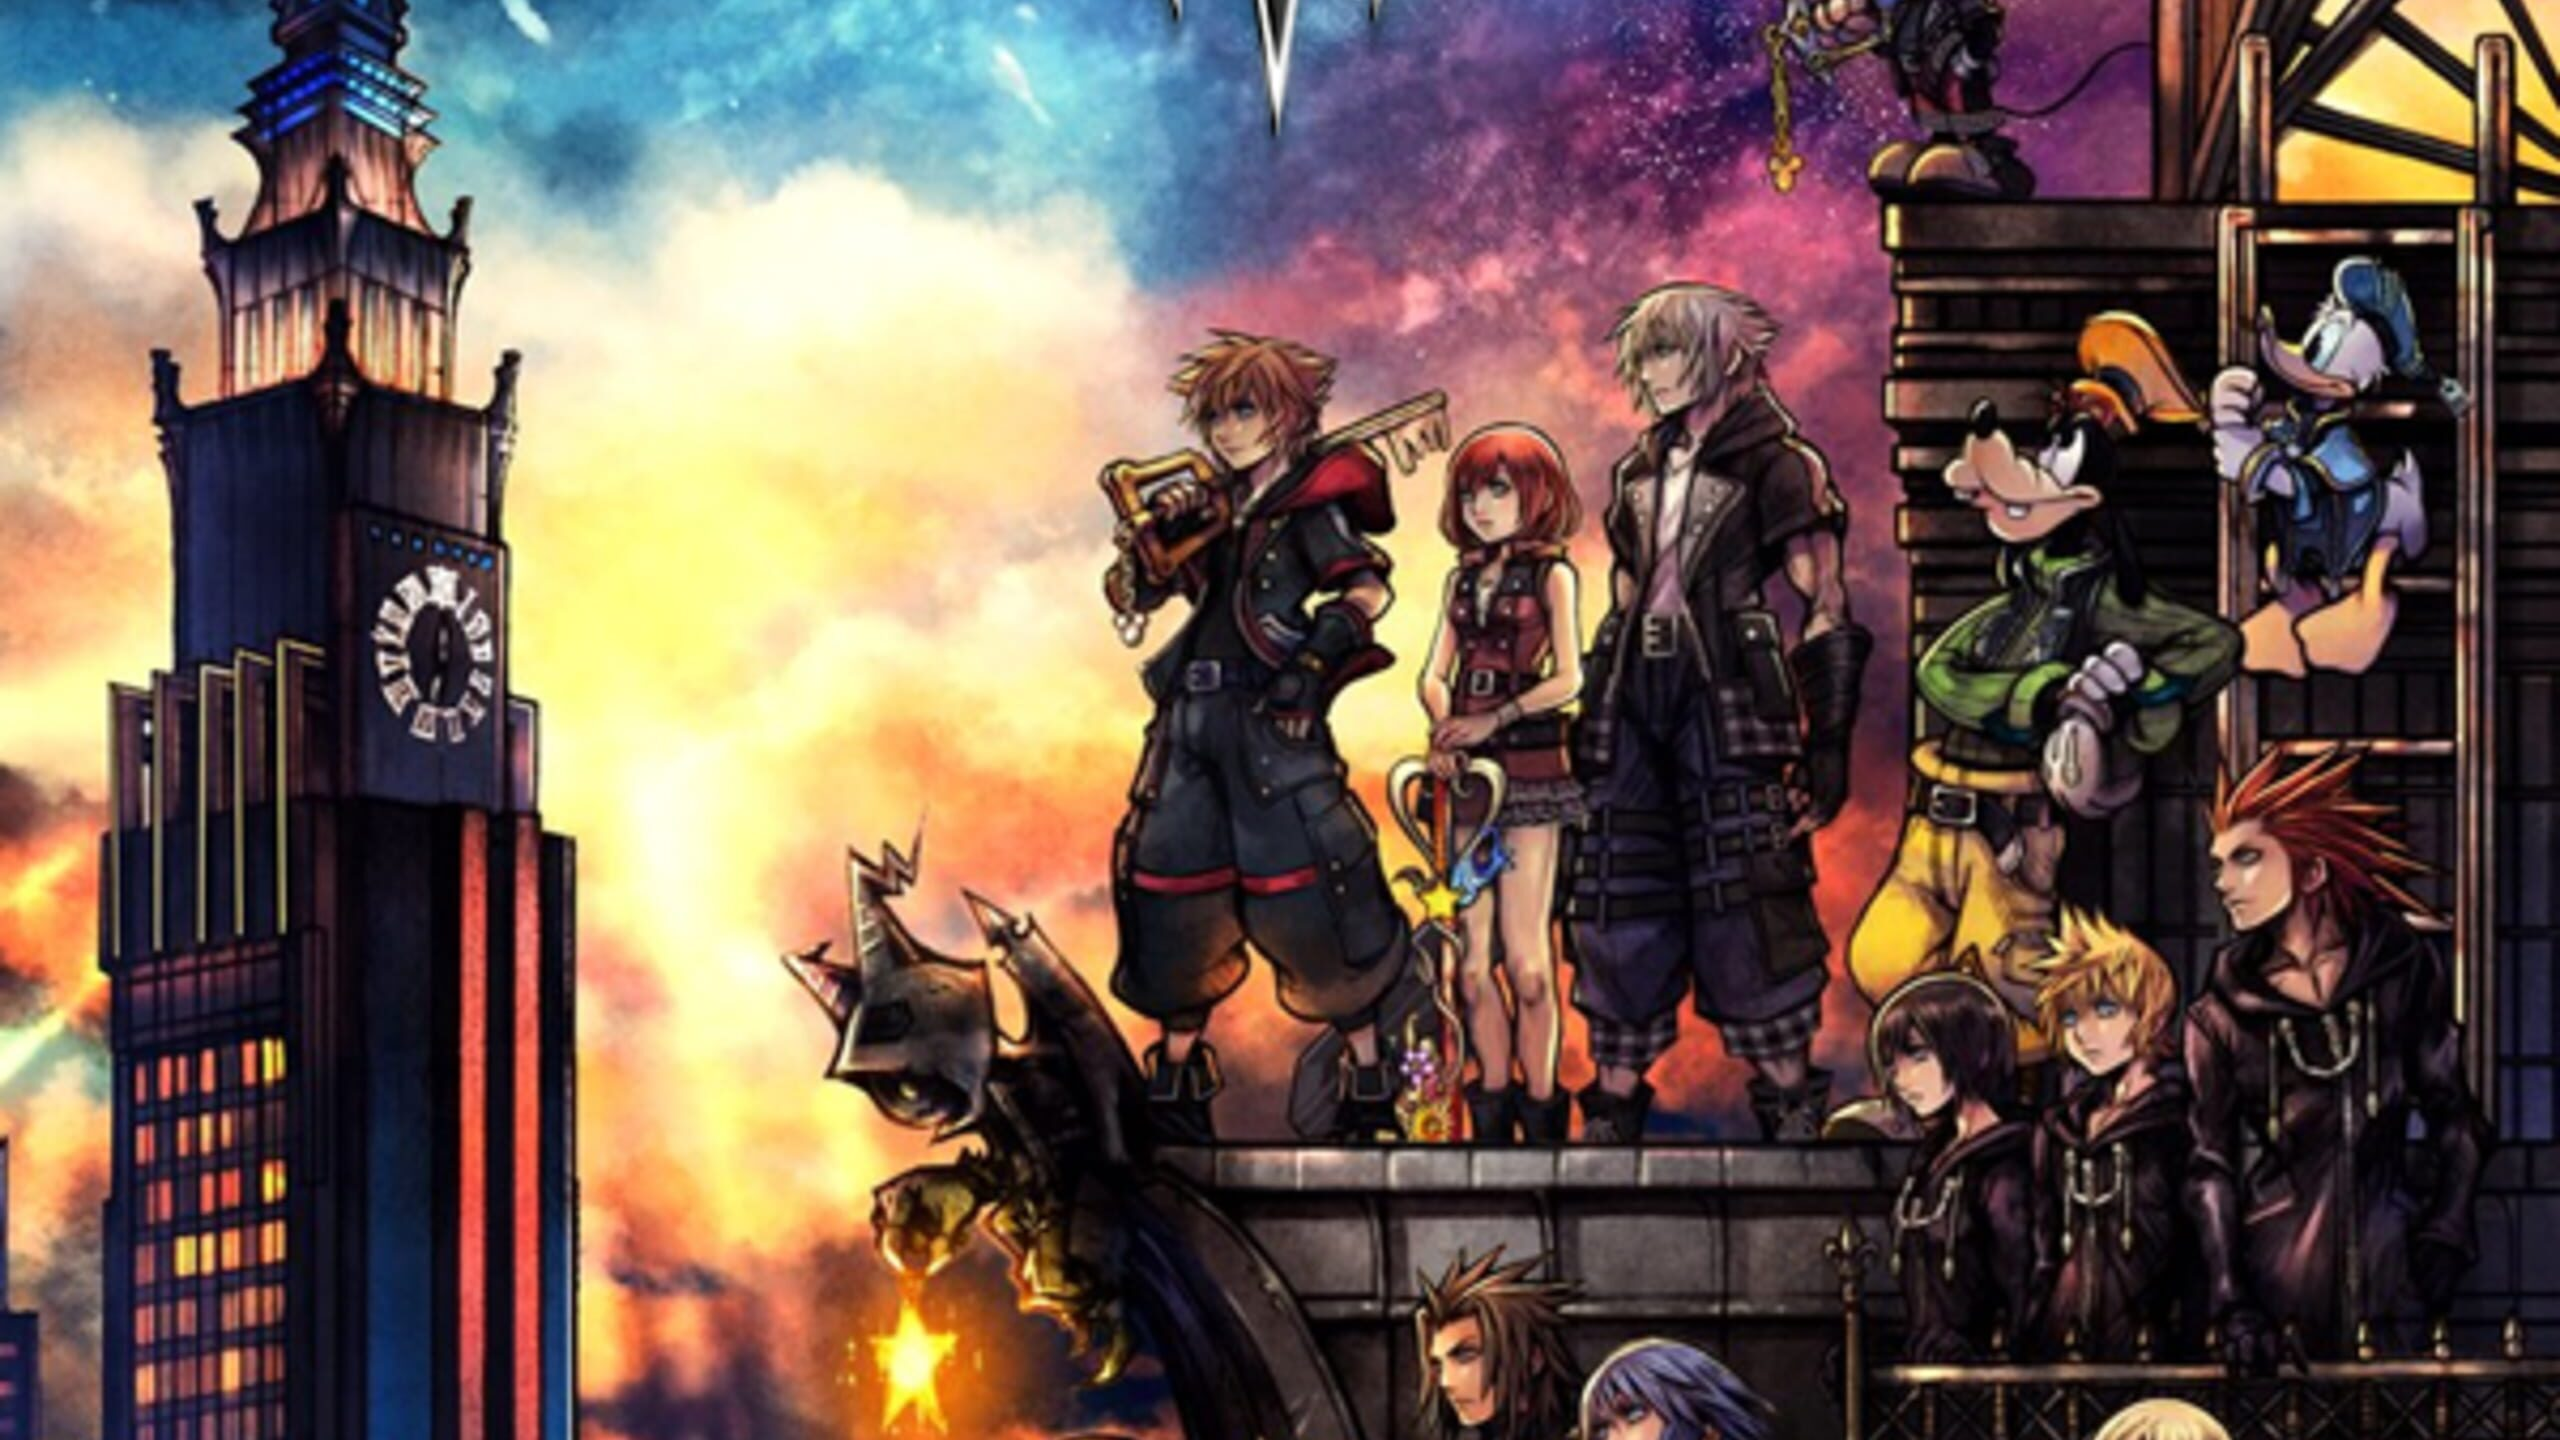 game cover art for Kingdom Hearts III